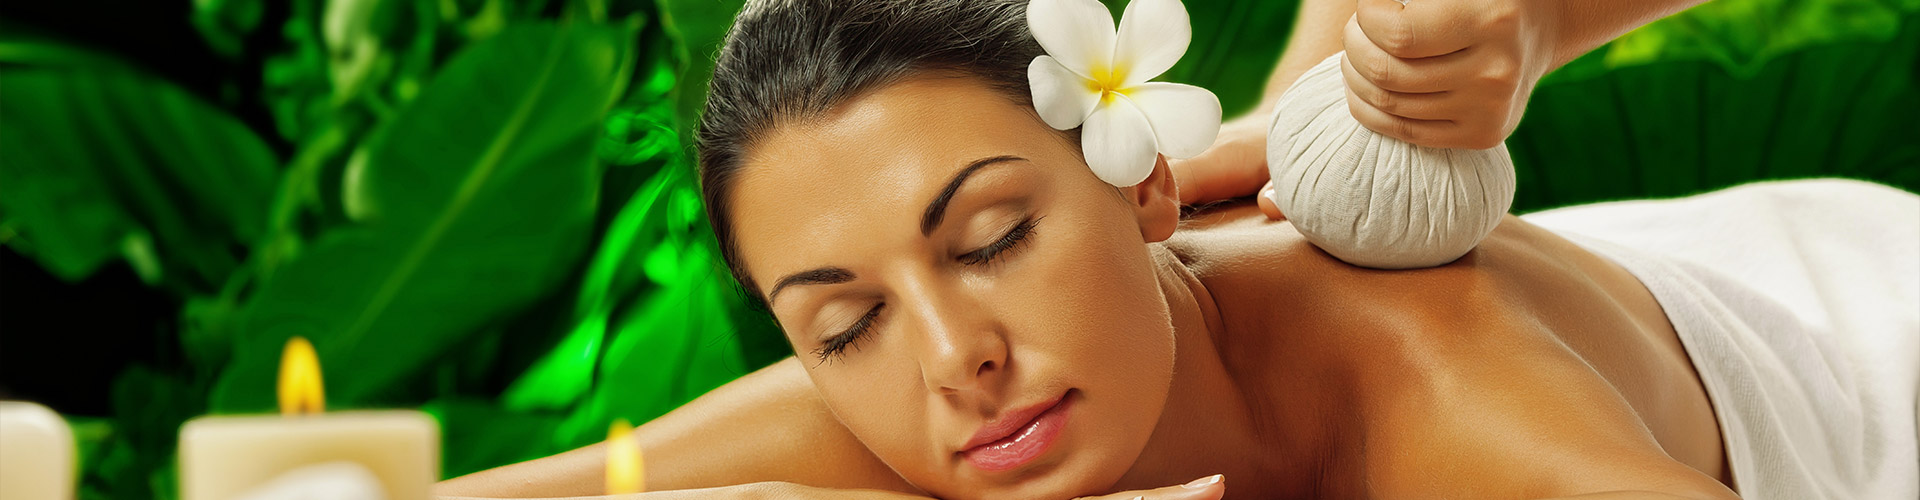 Ayurveda Spa and Wellness